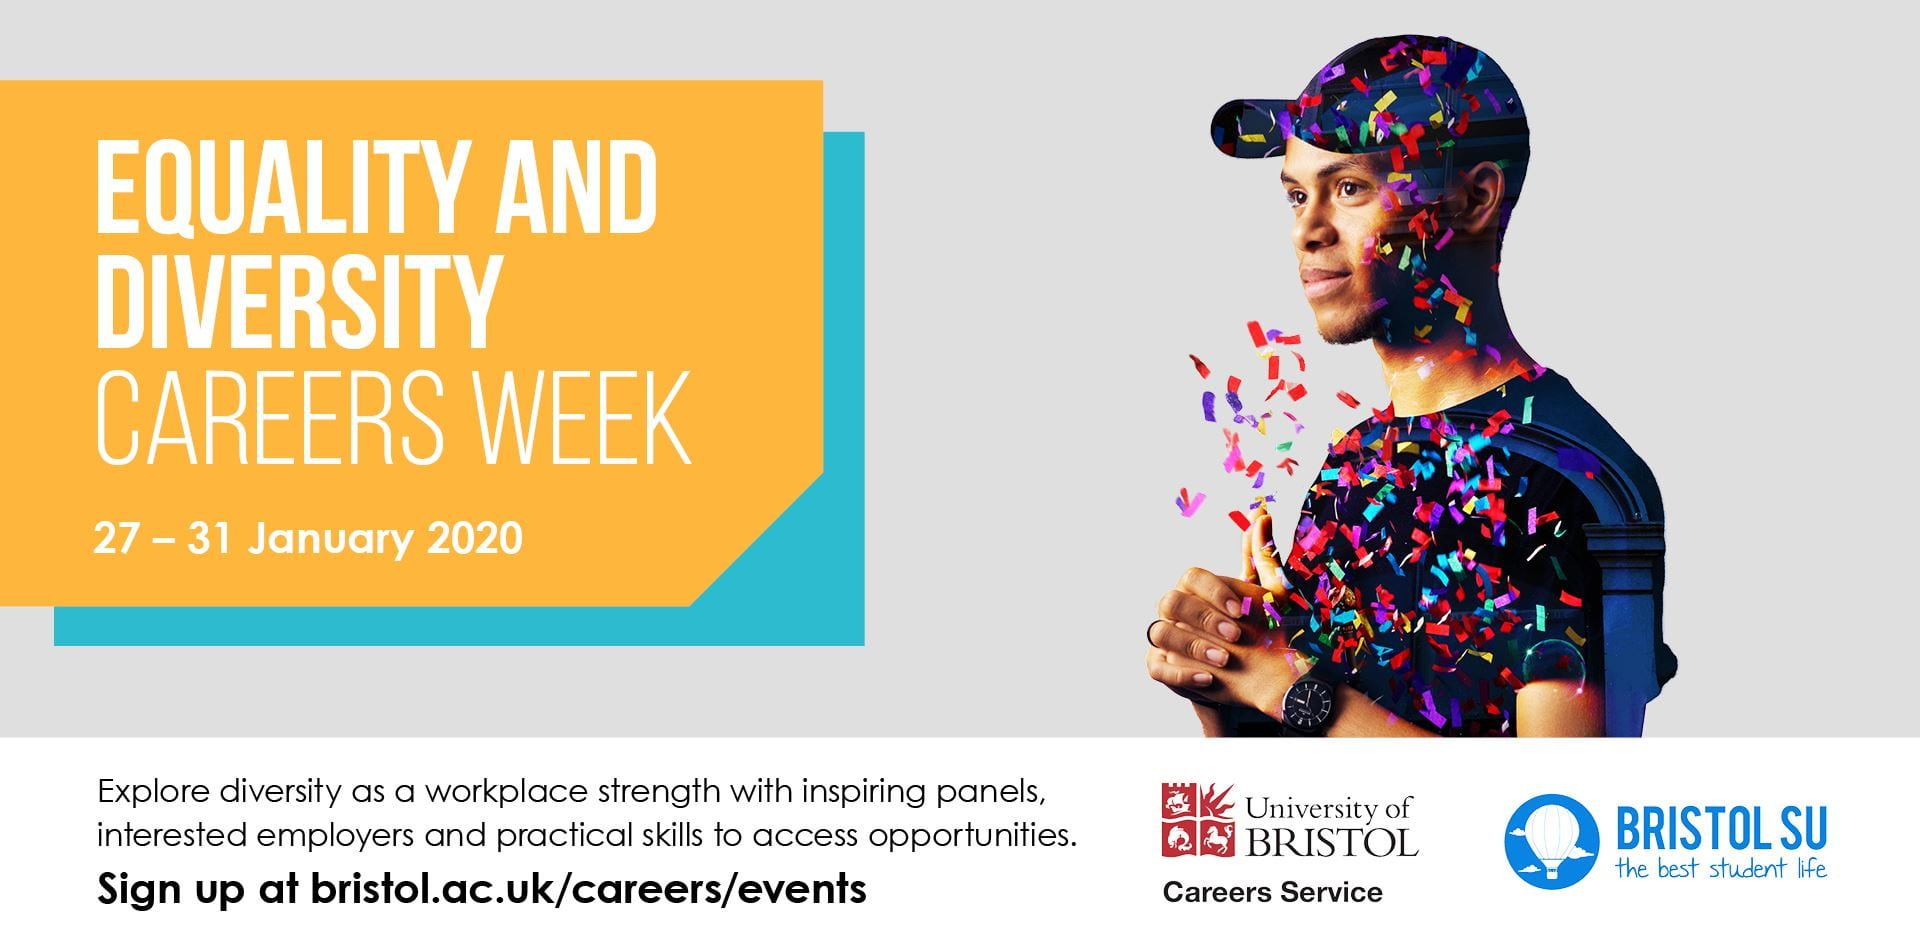 Equality and Diversity Careers Week 27-31 January